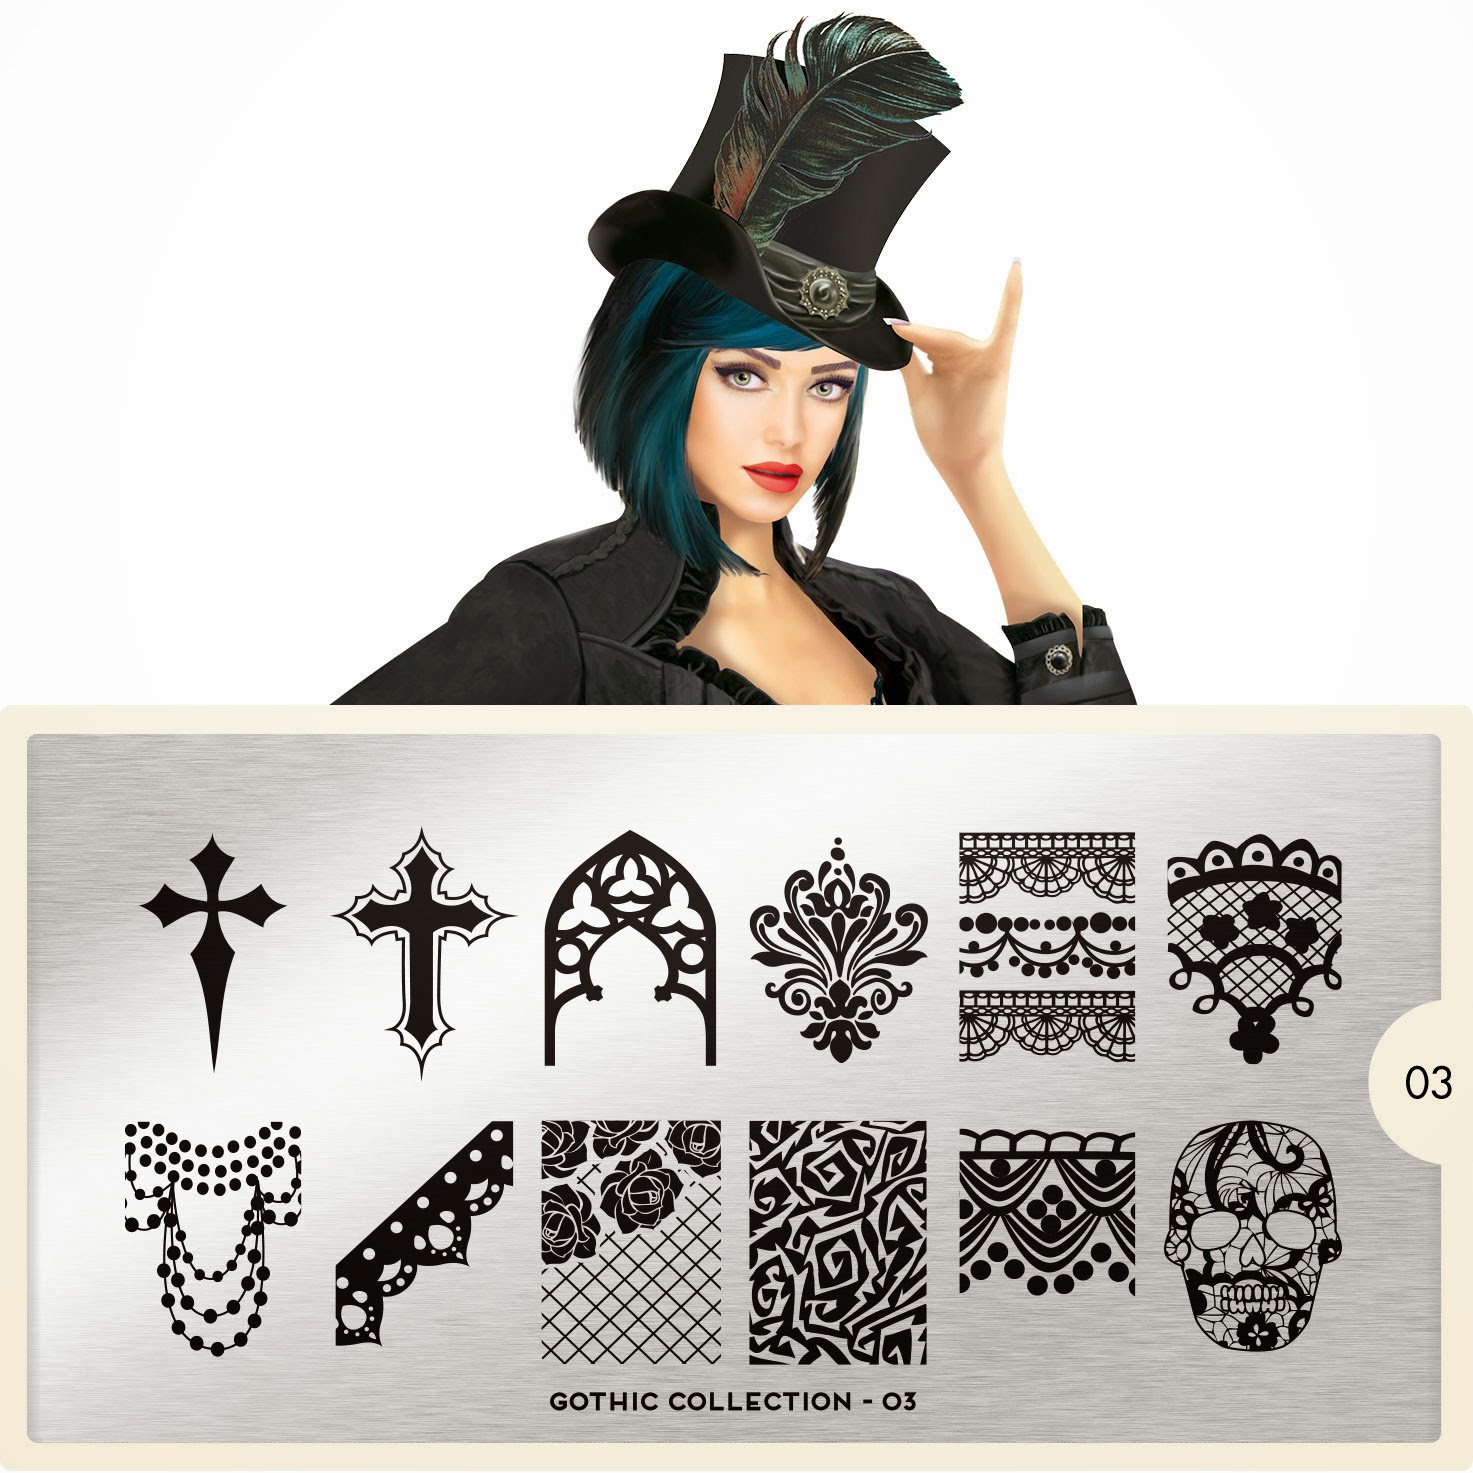 Lacquer Lockdwon - MoYou London, MoYou London Gothic COllection, new stamping plates 2014, new nail art stamping plates 2014, nail art stamping, nail art stamping blog, halloween nail art, halloween nails, diy nail art, cute halloween nail art ideas, nail art ideas, stamping